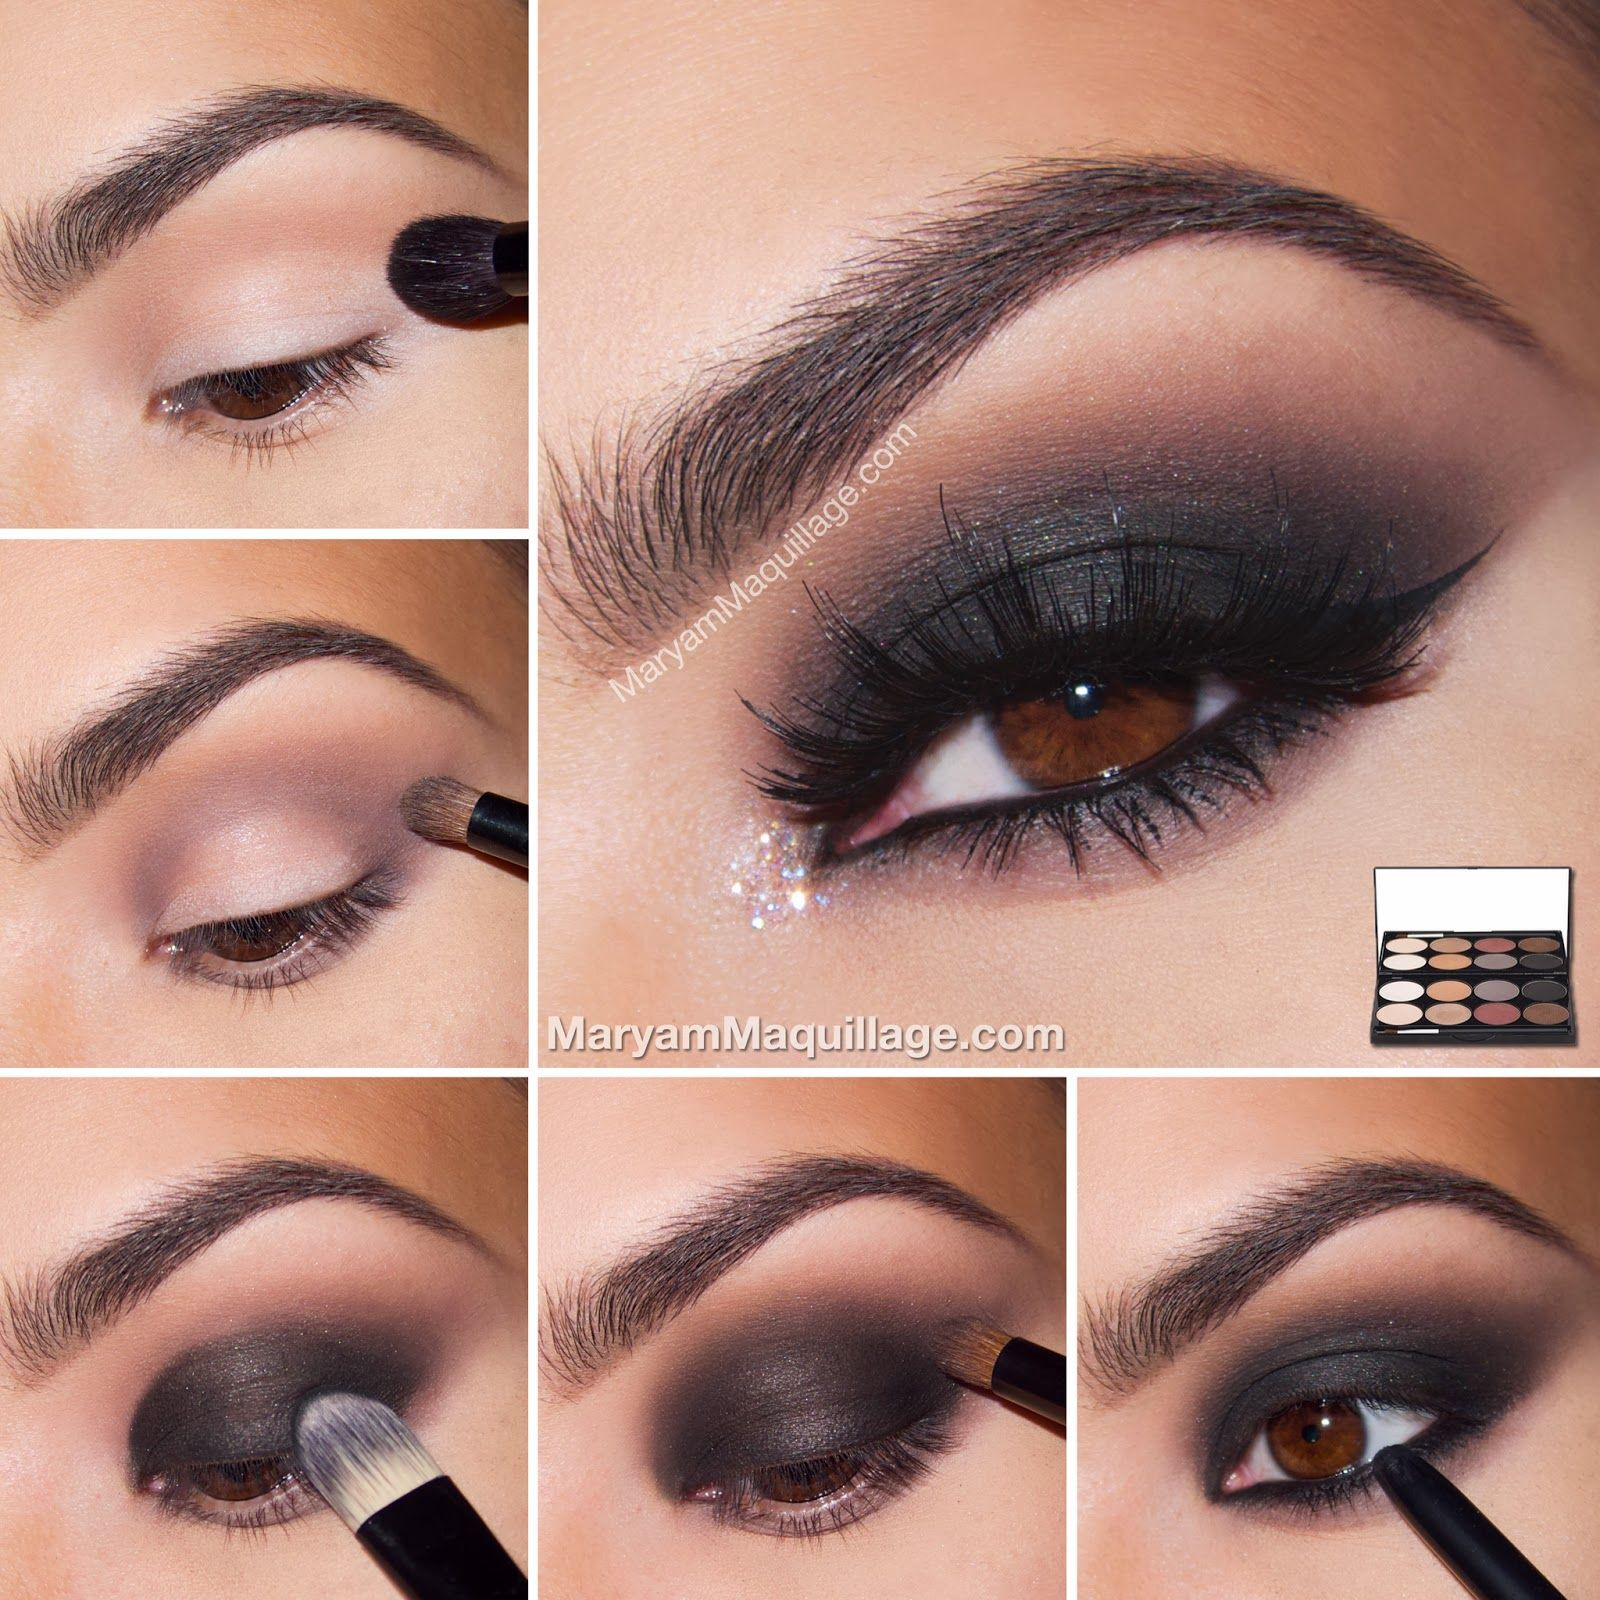 Fabuleux Maryam Maquillage: Classic Makeup: Contour & Smoke | The Eye of My  QB18